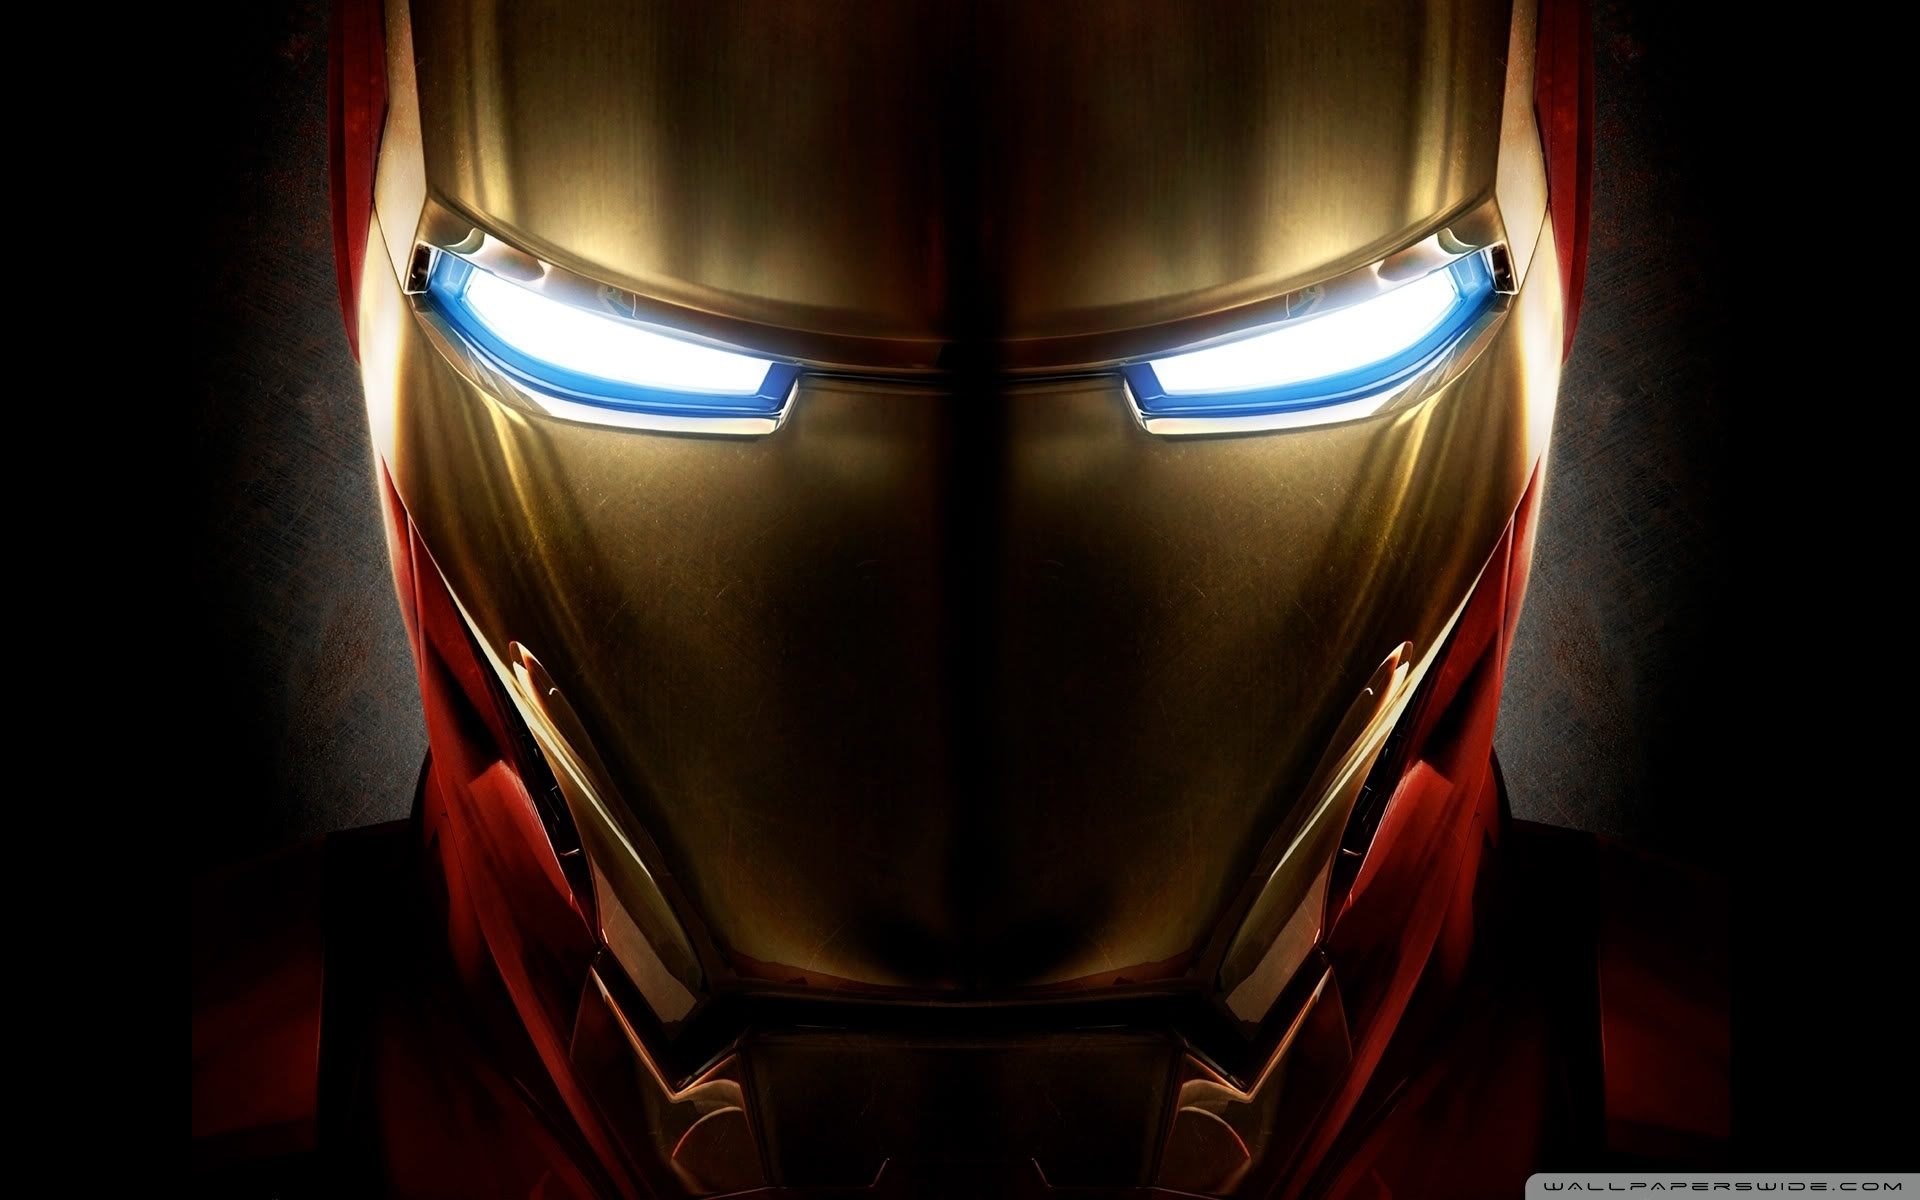 10 New Hd Iron Man Wallpaper FULL HD 1080p For PC Desktop